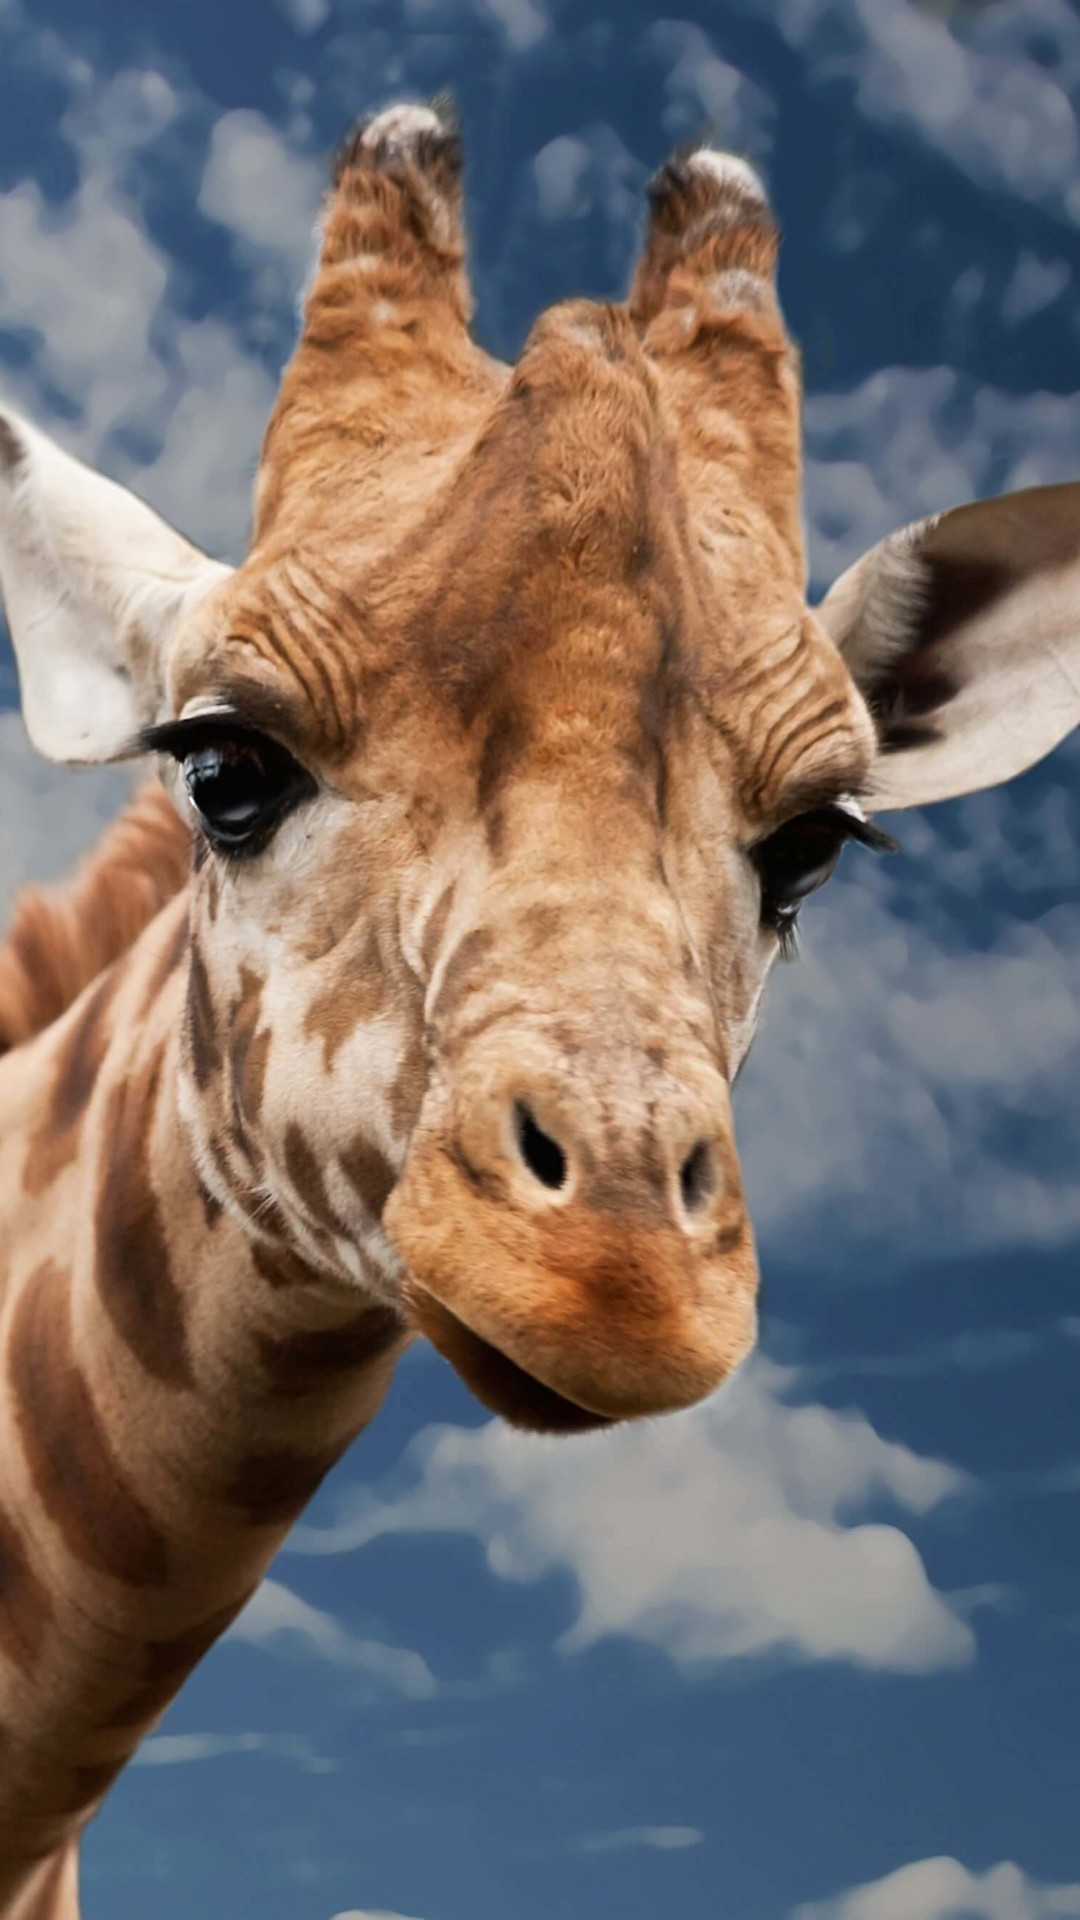 Funny Giraffe Wallpaper for SONY Xperia Z3